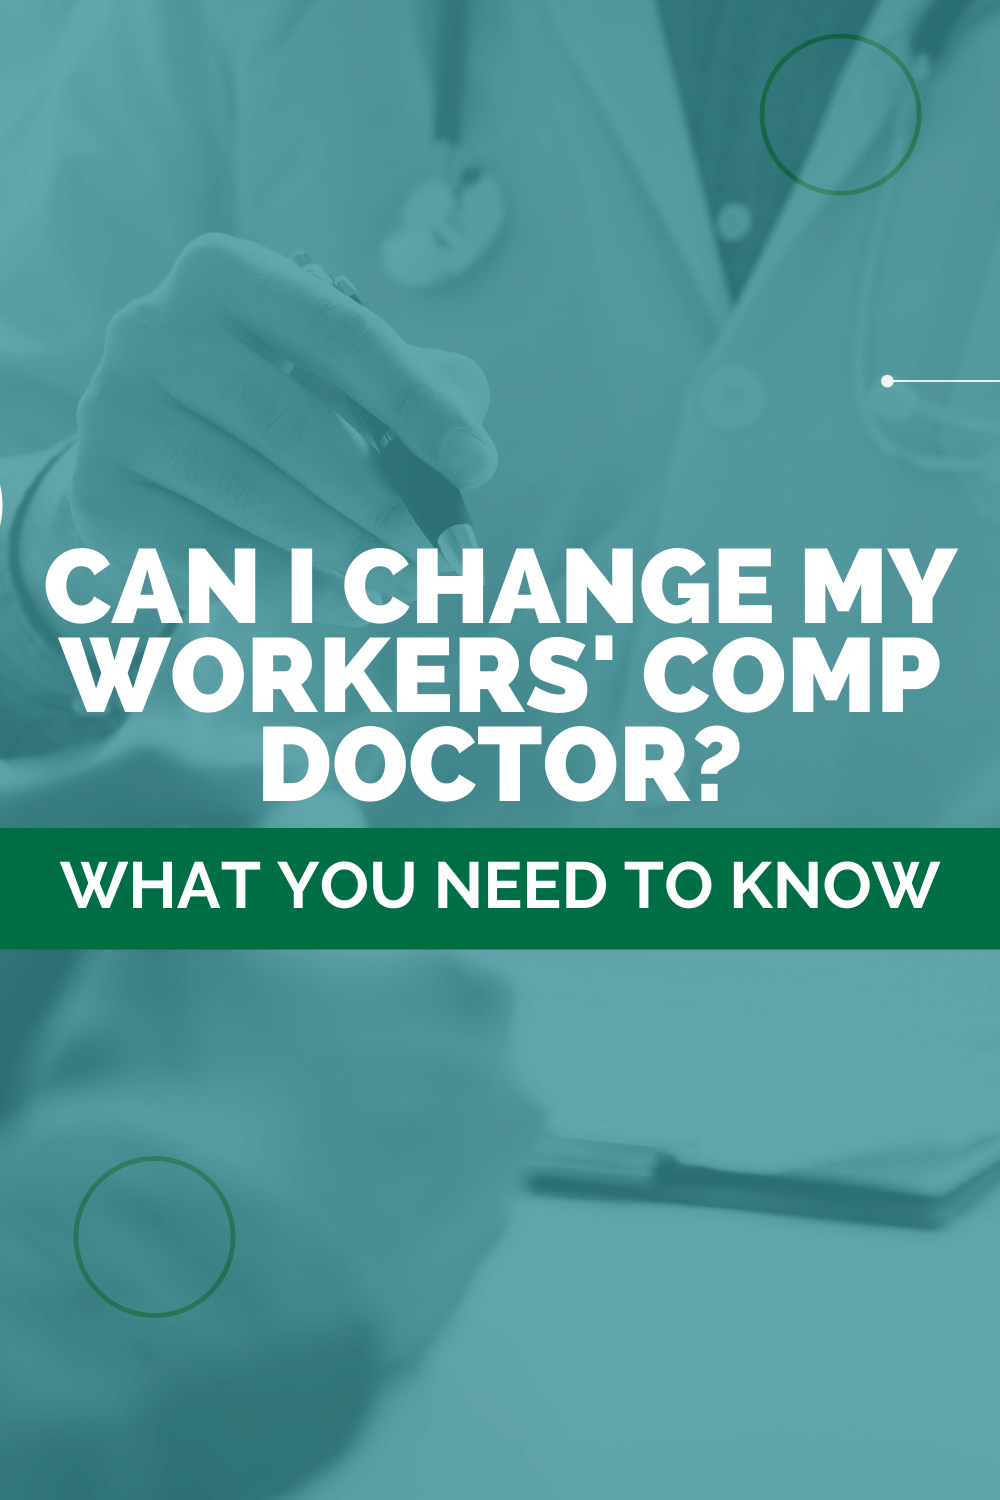 Can I Change My Workers' Comp Doctor: What You Need To Know